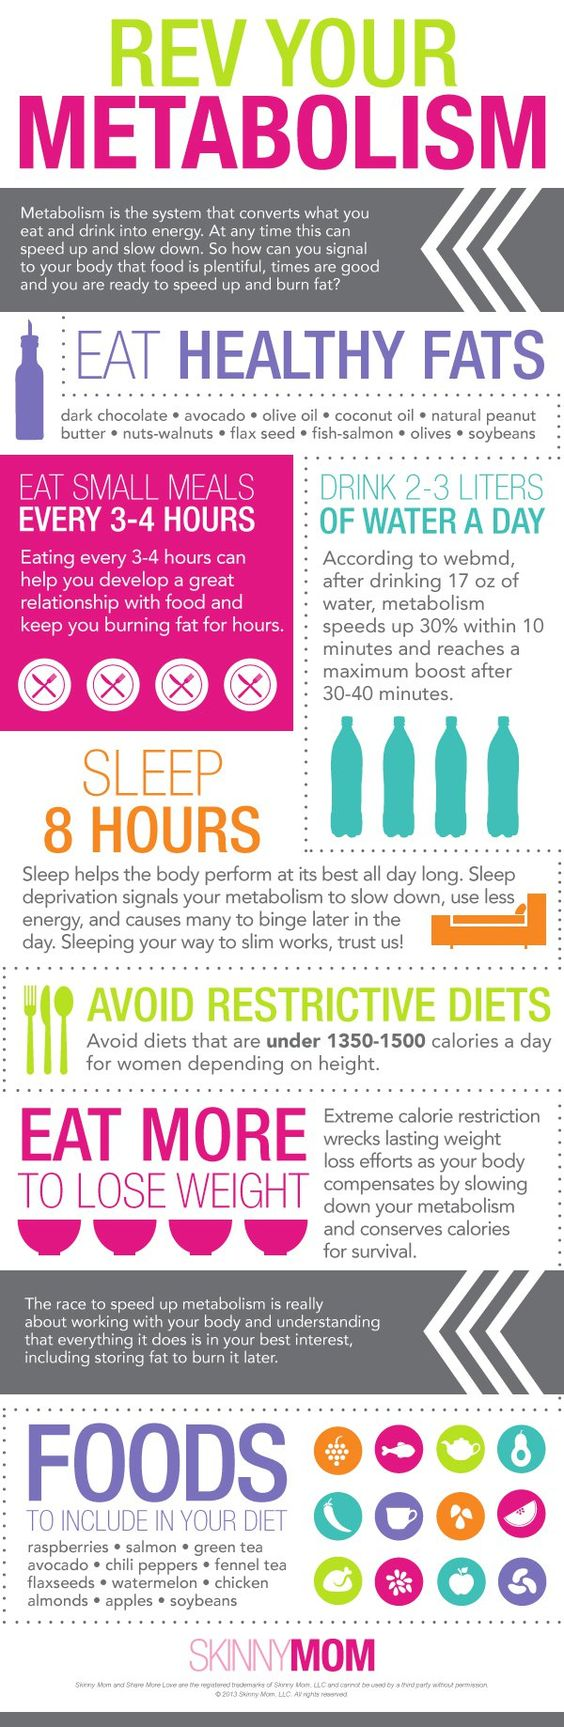 Infographic: Rev Your Metabolism for Weight Loss | Skinny Mom | Where Moms Get the Skinny on Healthy Living